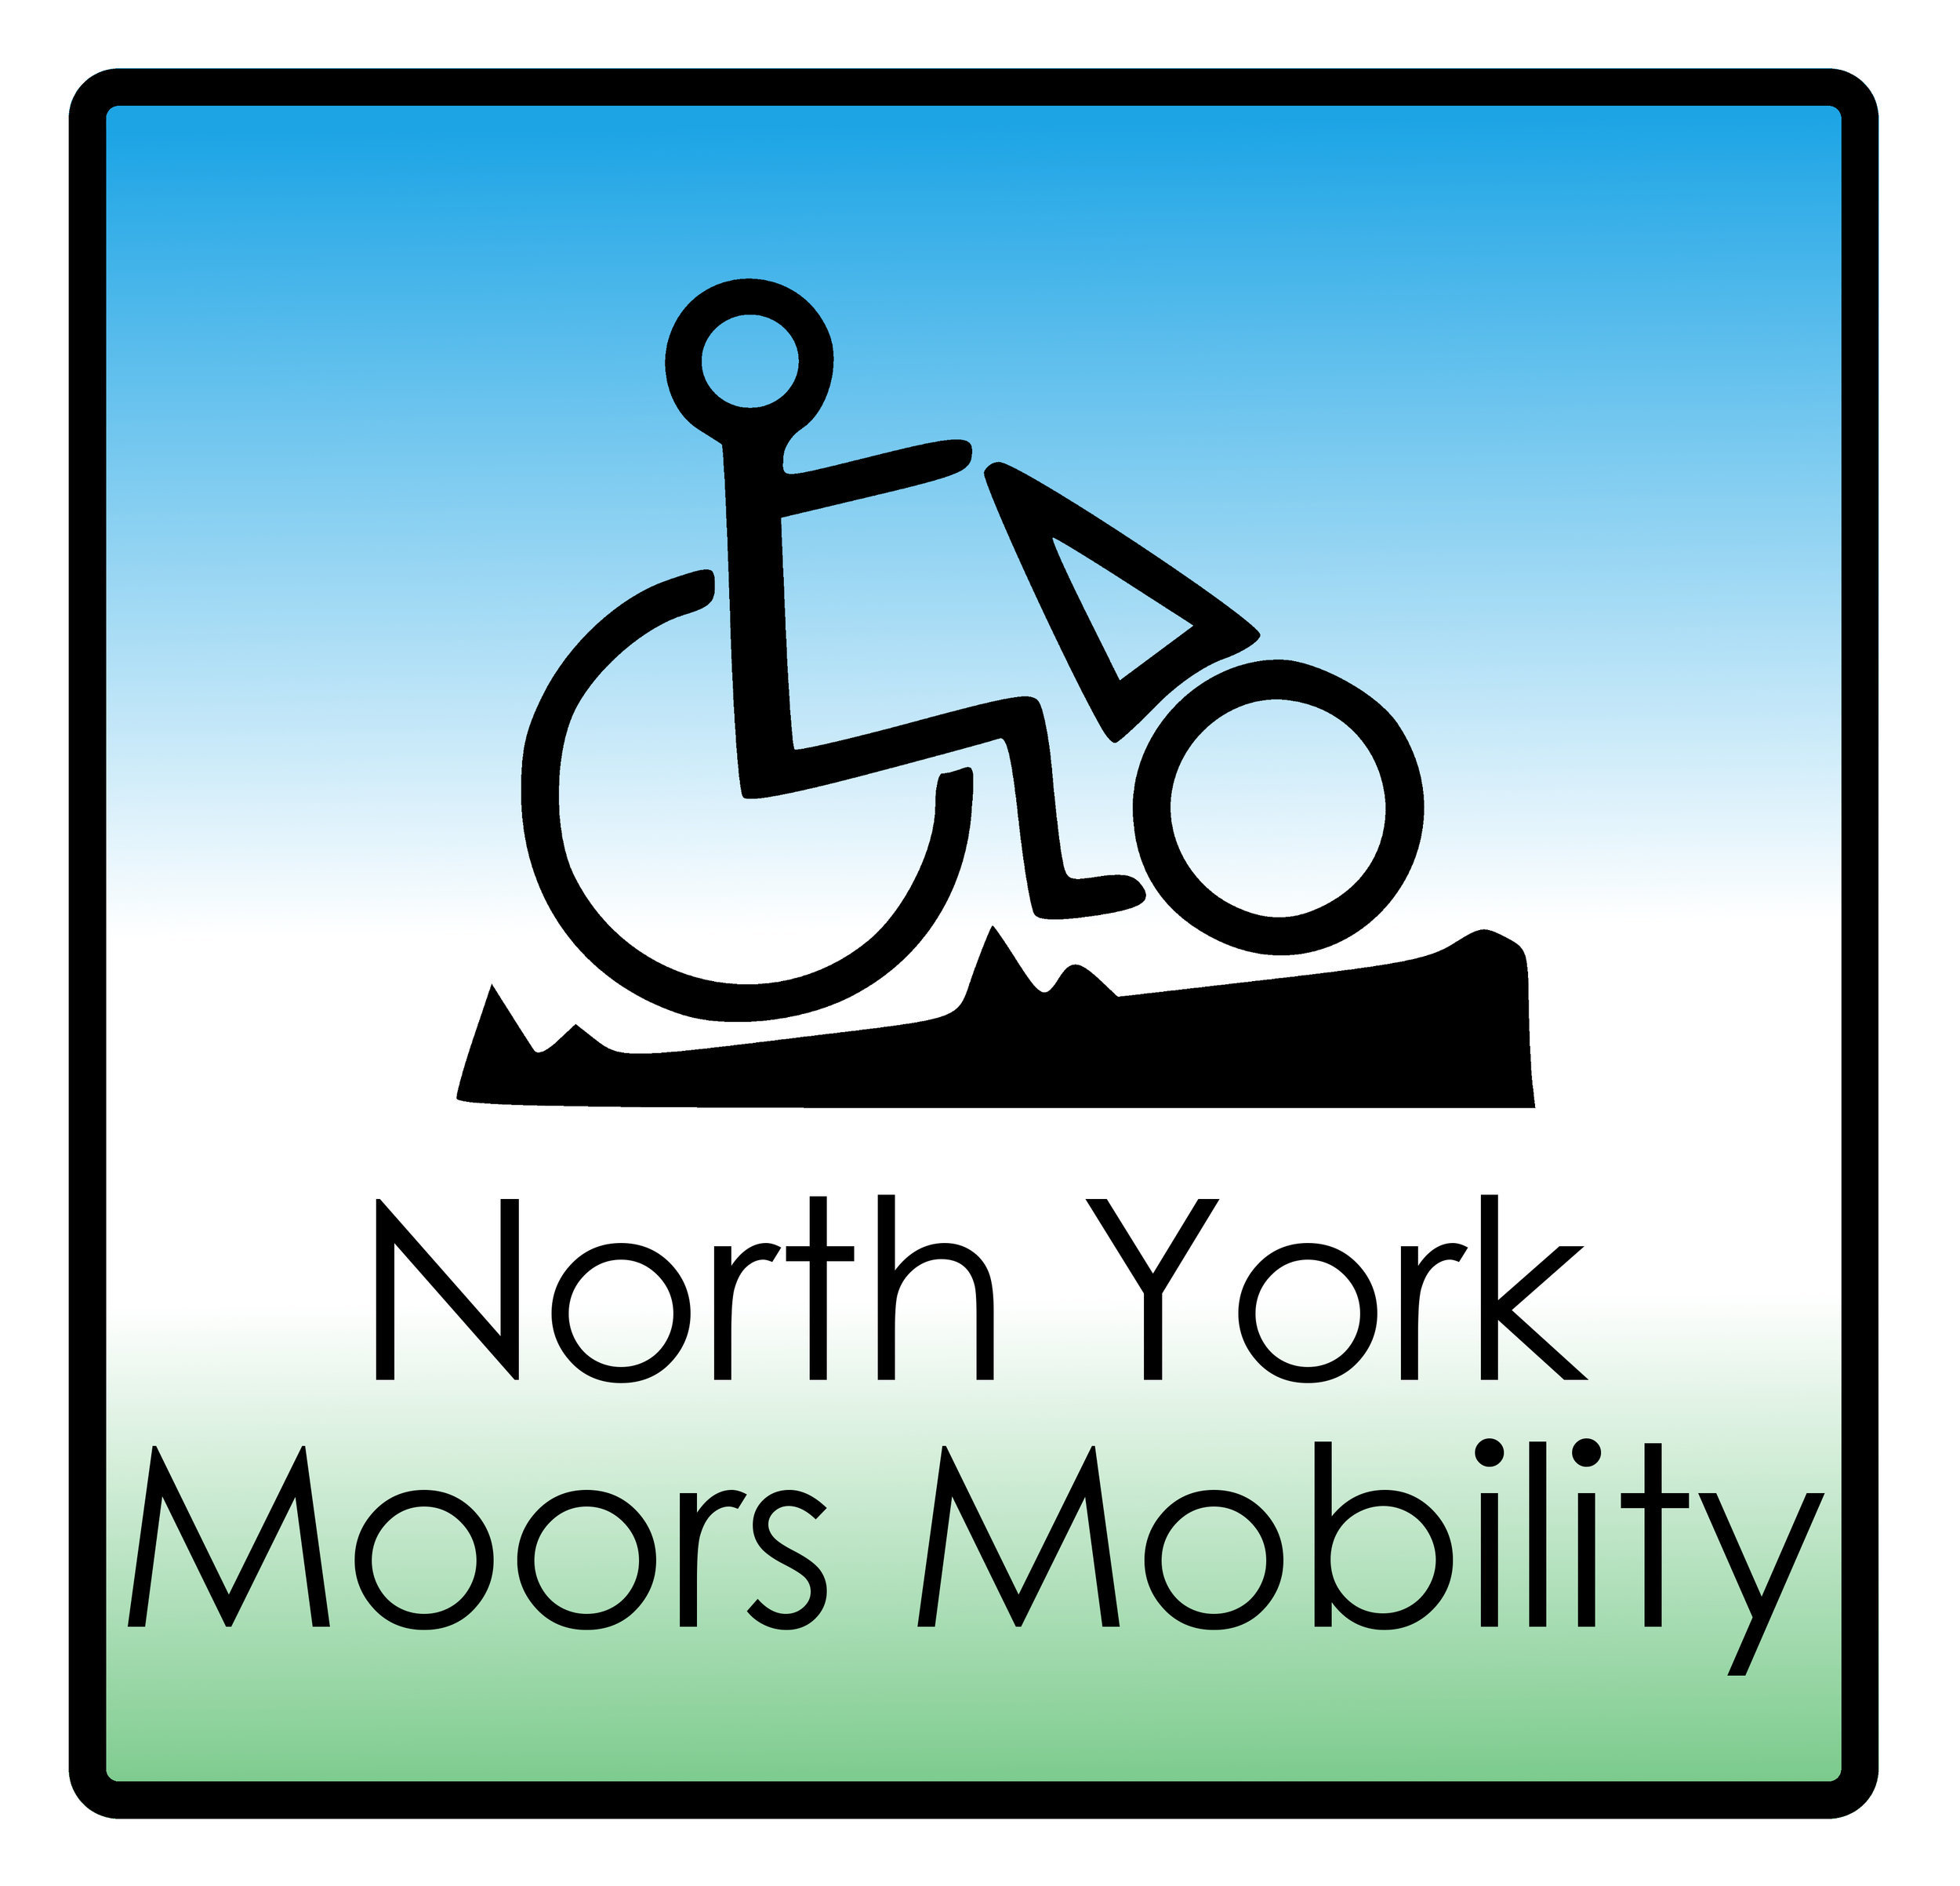 North York Moors Mobility logo